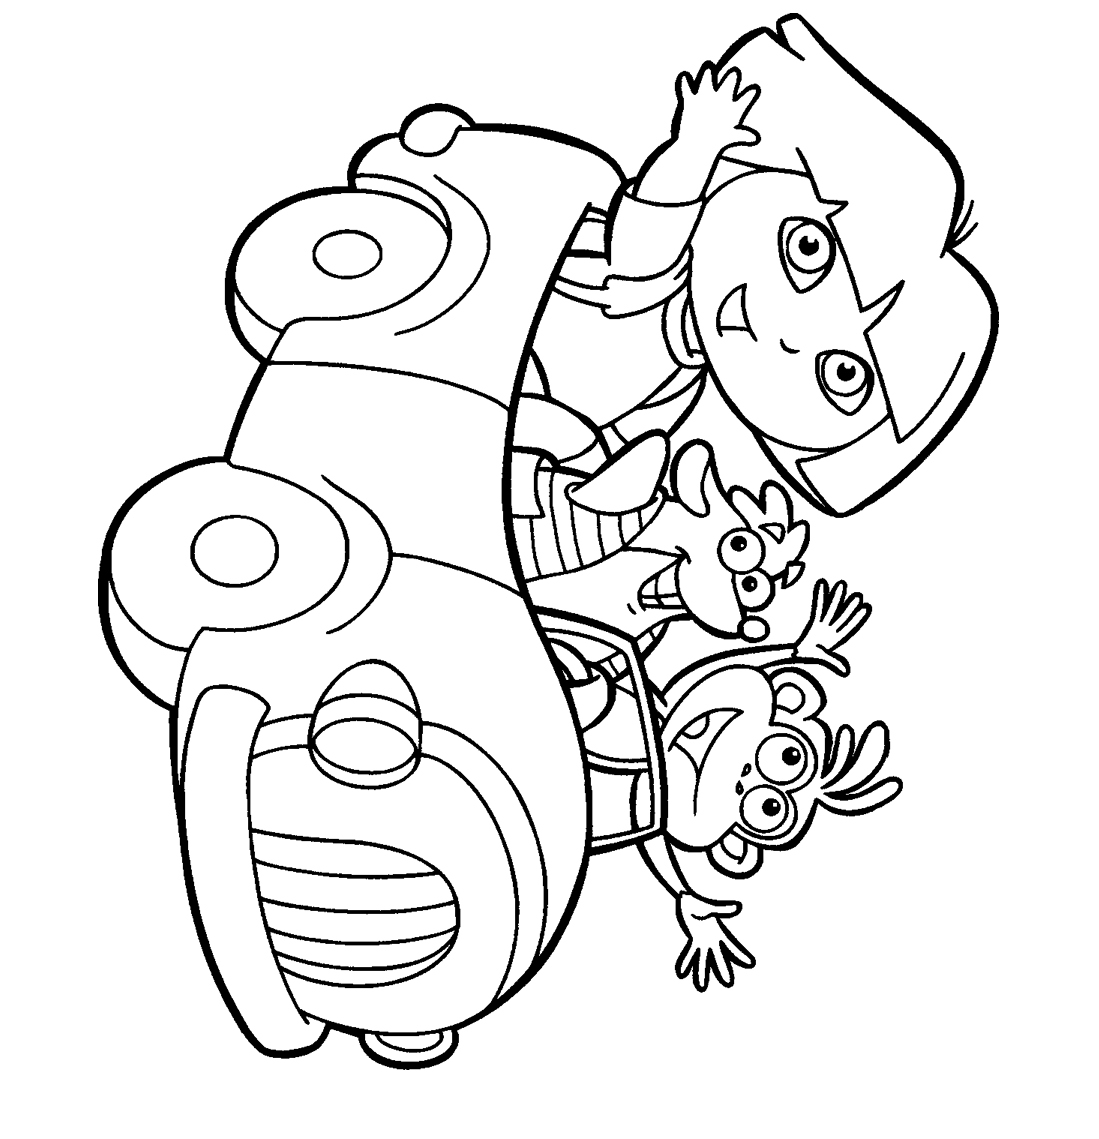 Printable coloring pages for kids coloring pages for kids for Coloring book pages for toddlers